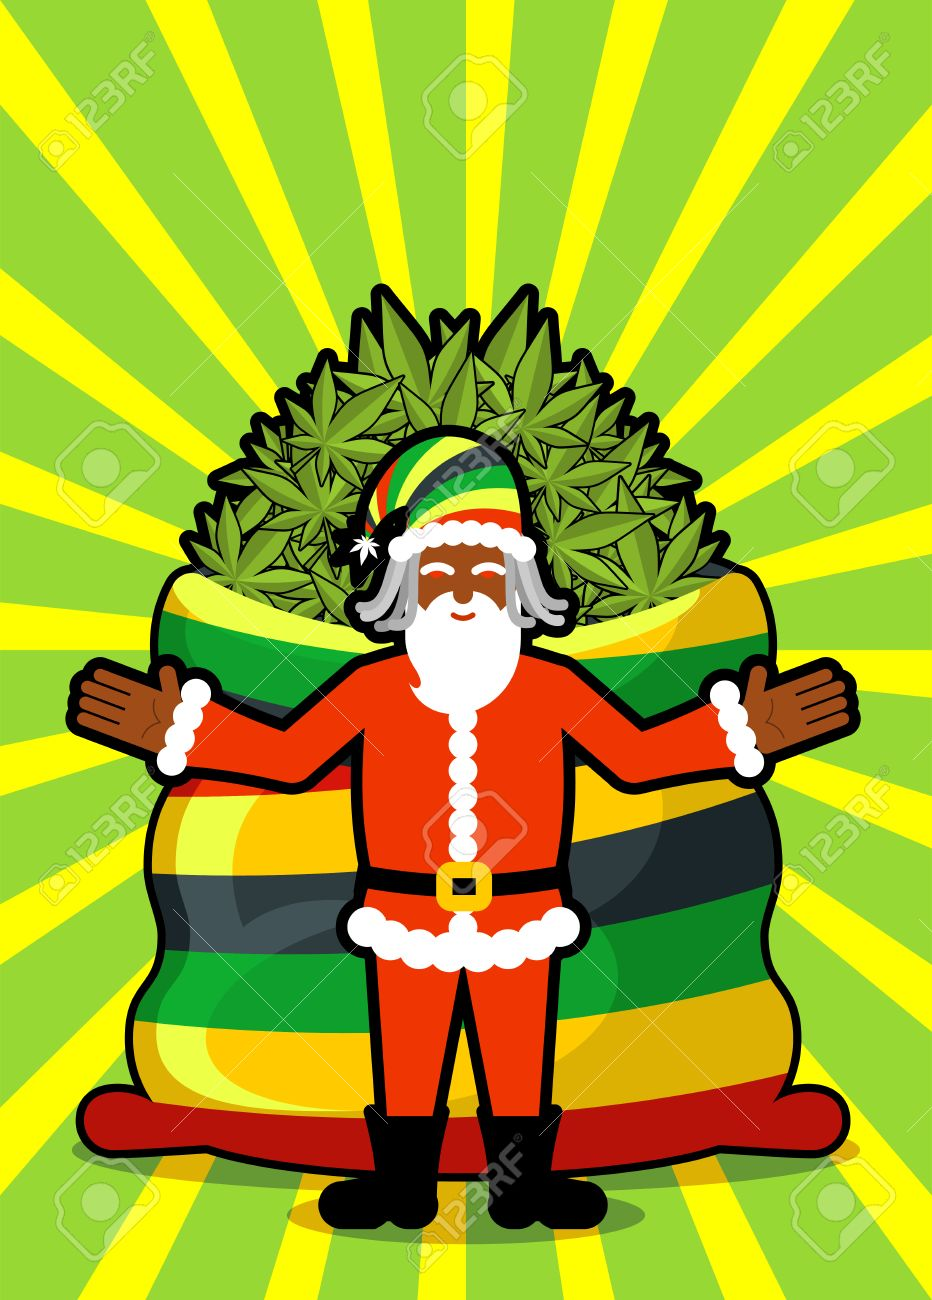 Babbo natale weed